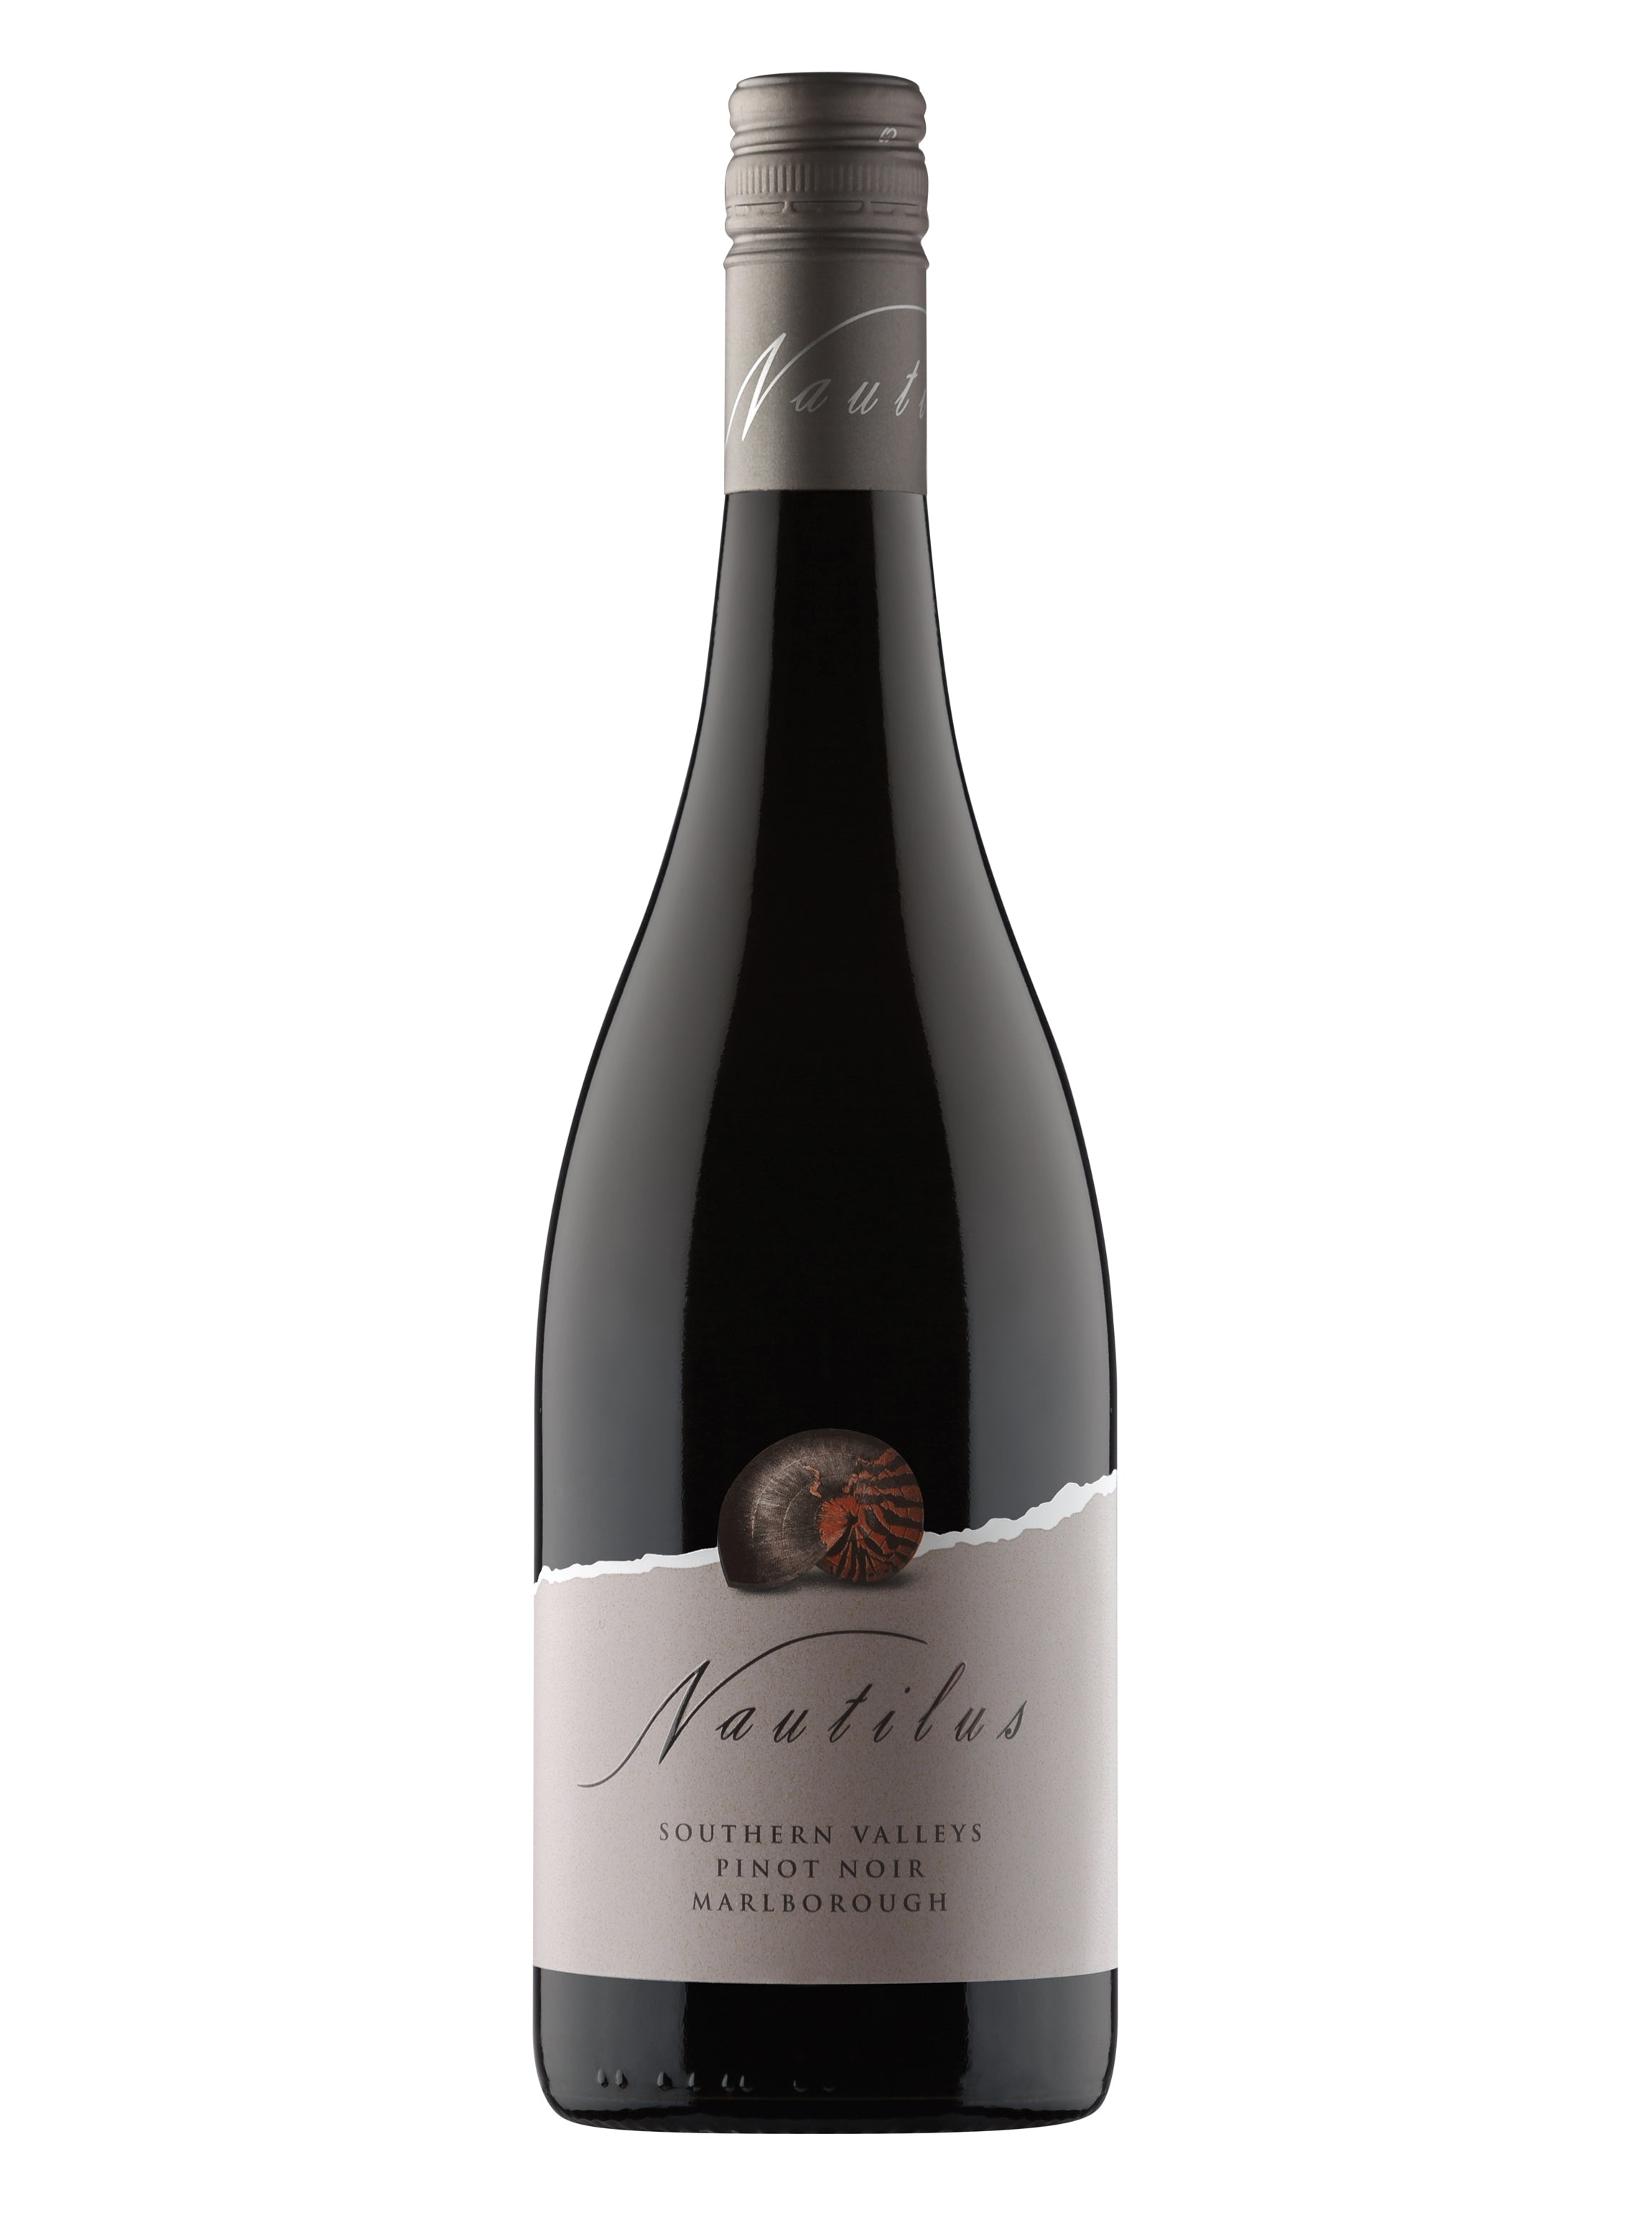 Nautilus Southern Valley Pinot Noir 2016